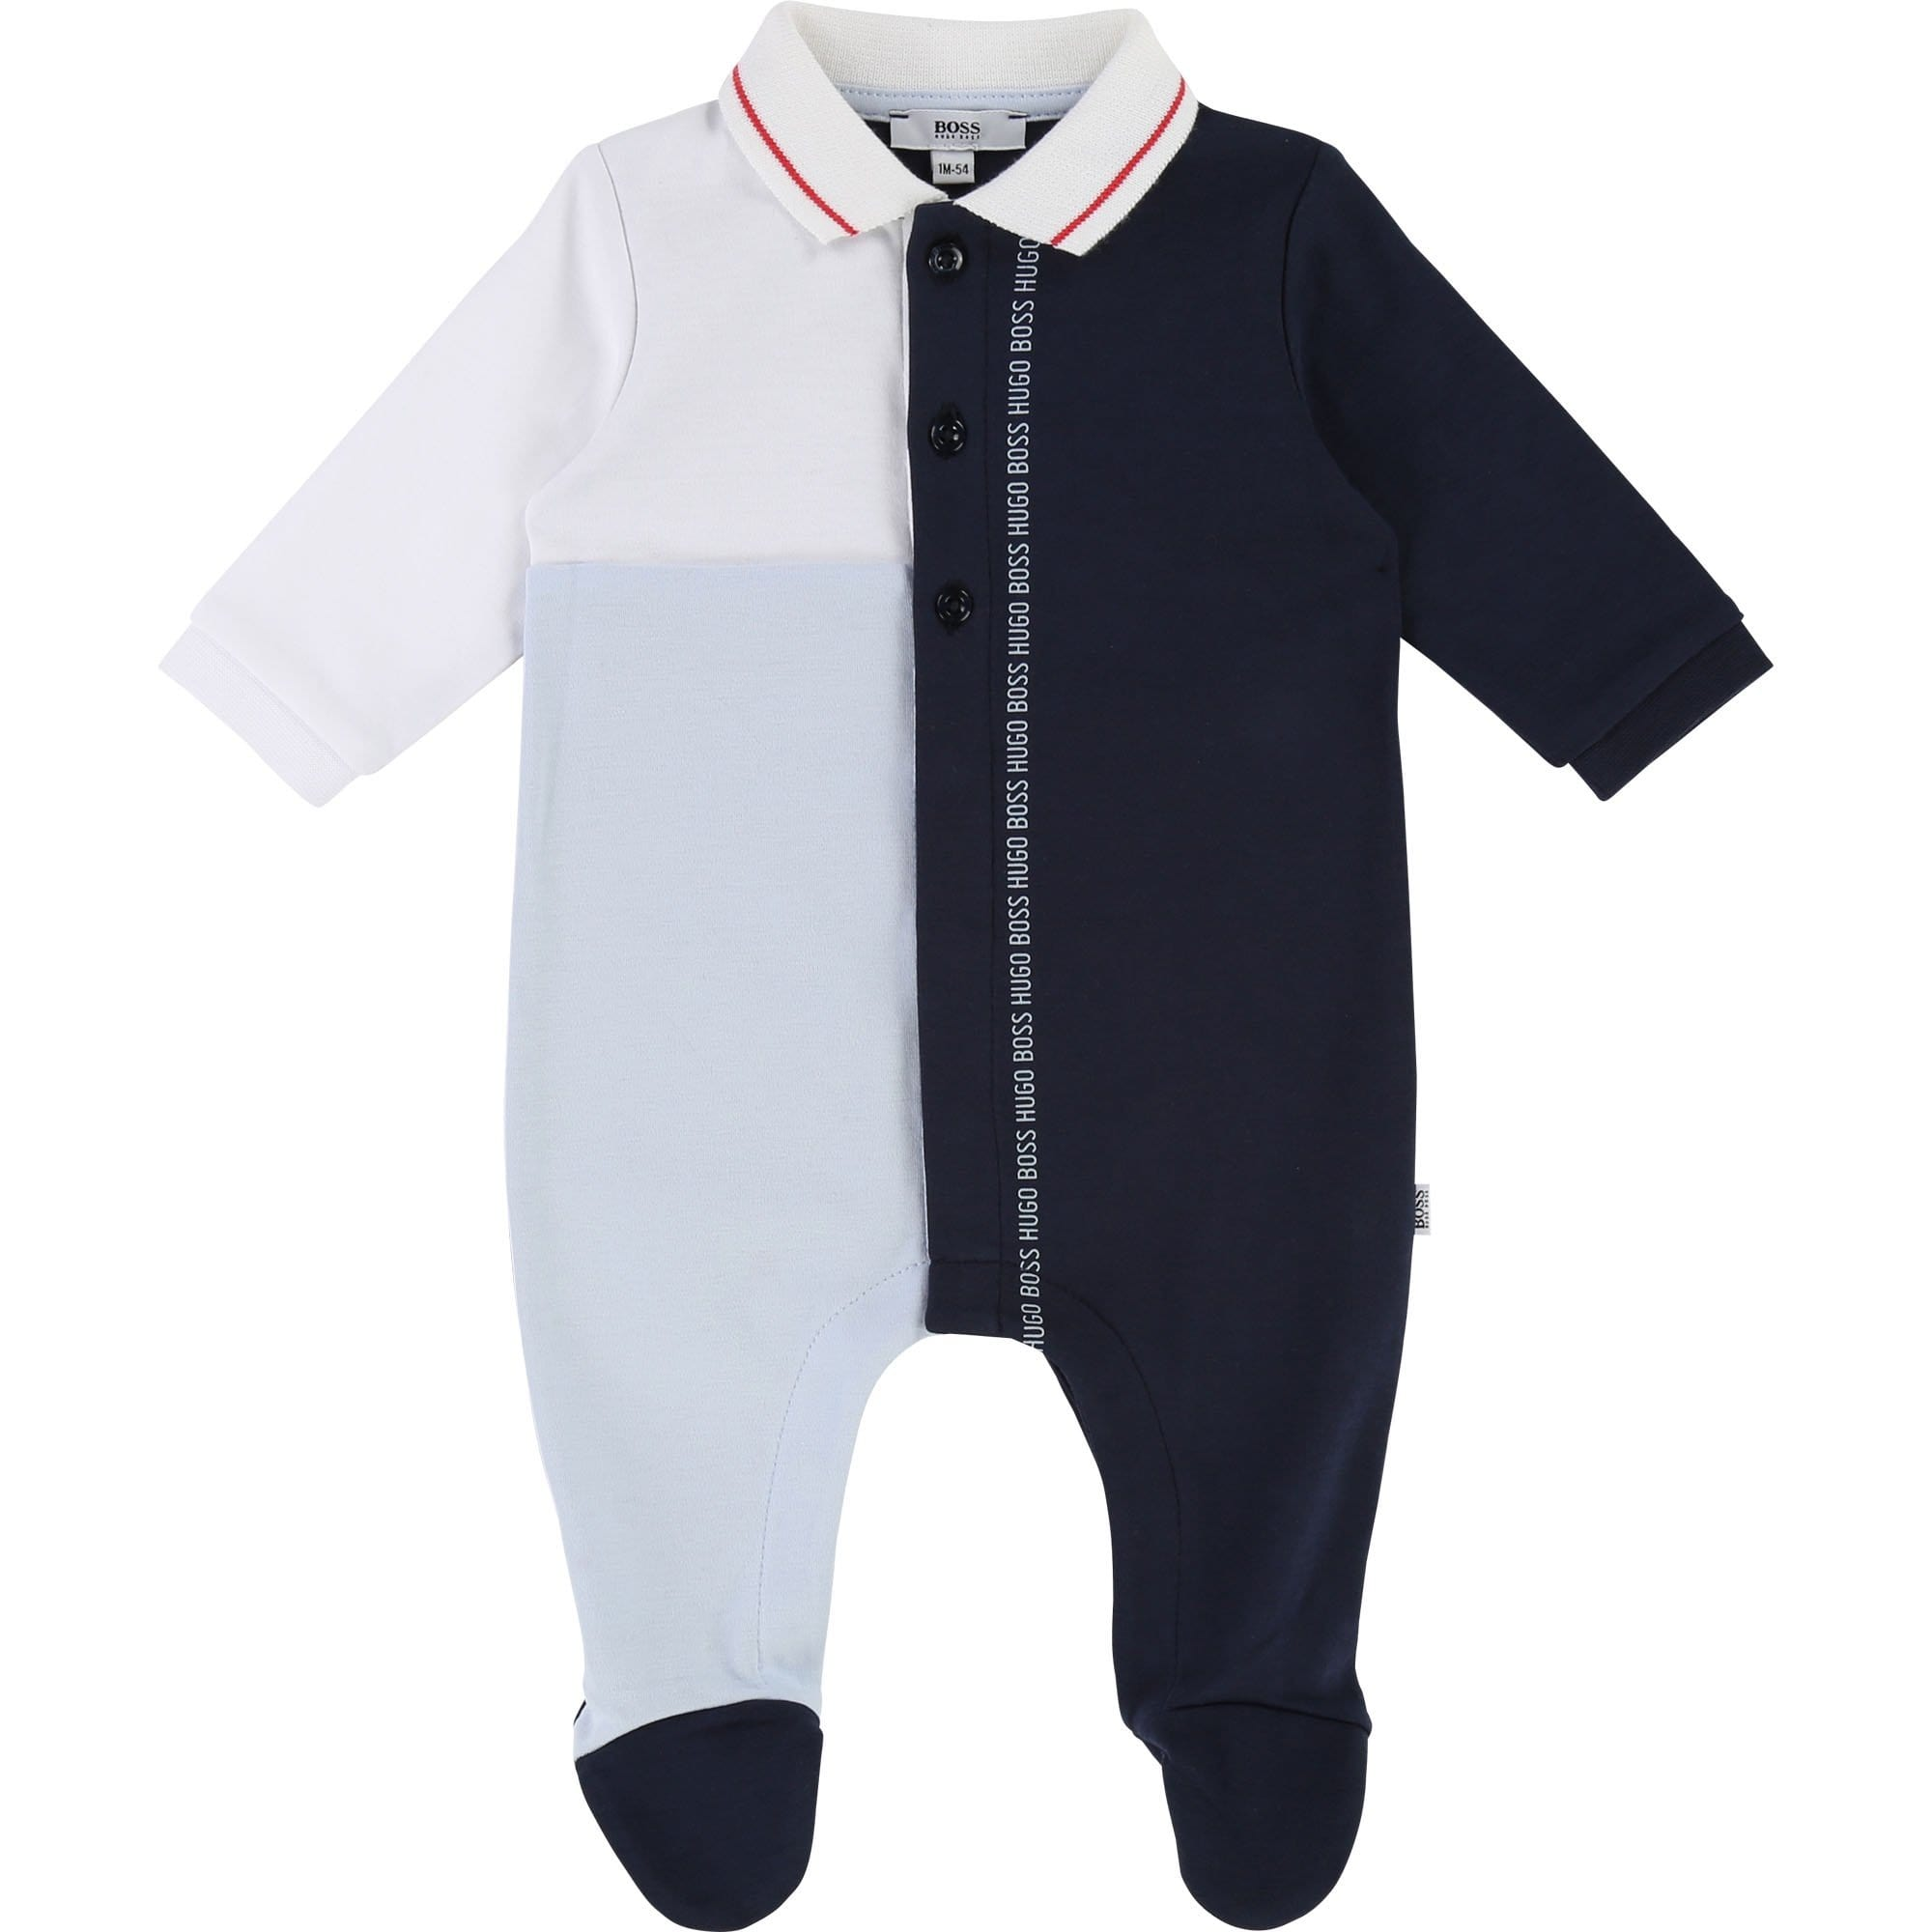 Hugo Boss Baby Onsie Navy/Pale Blue